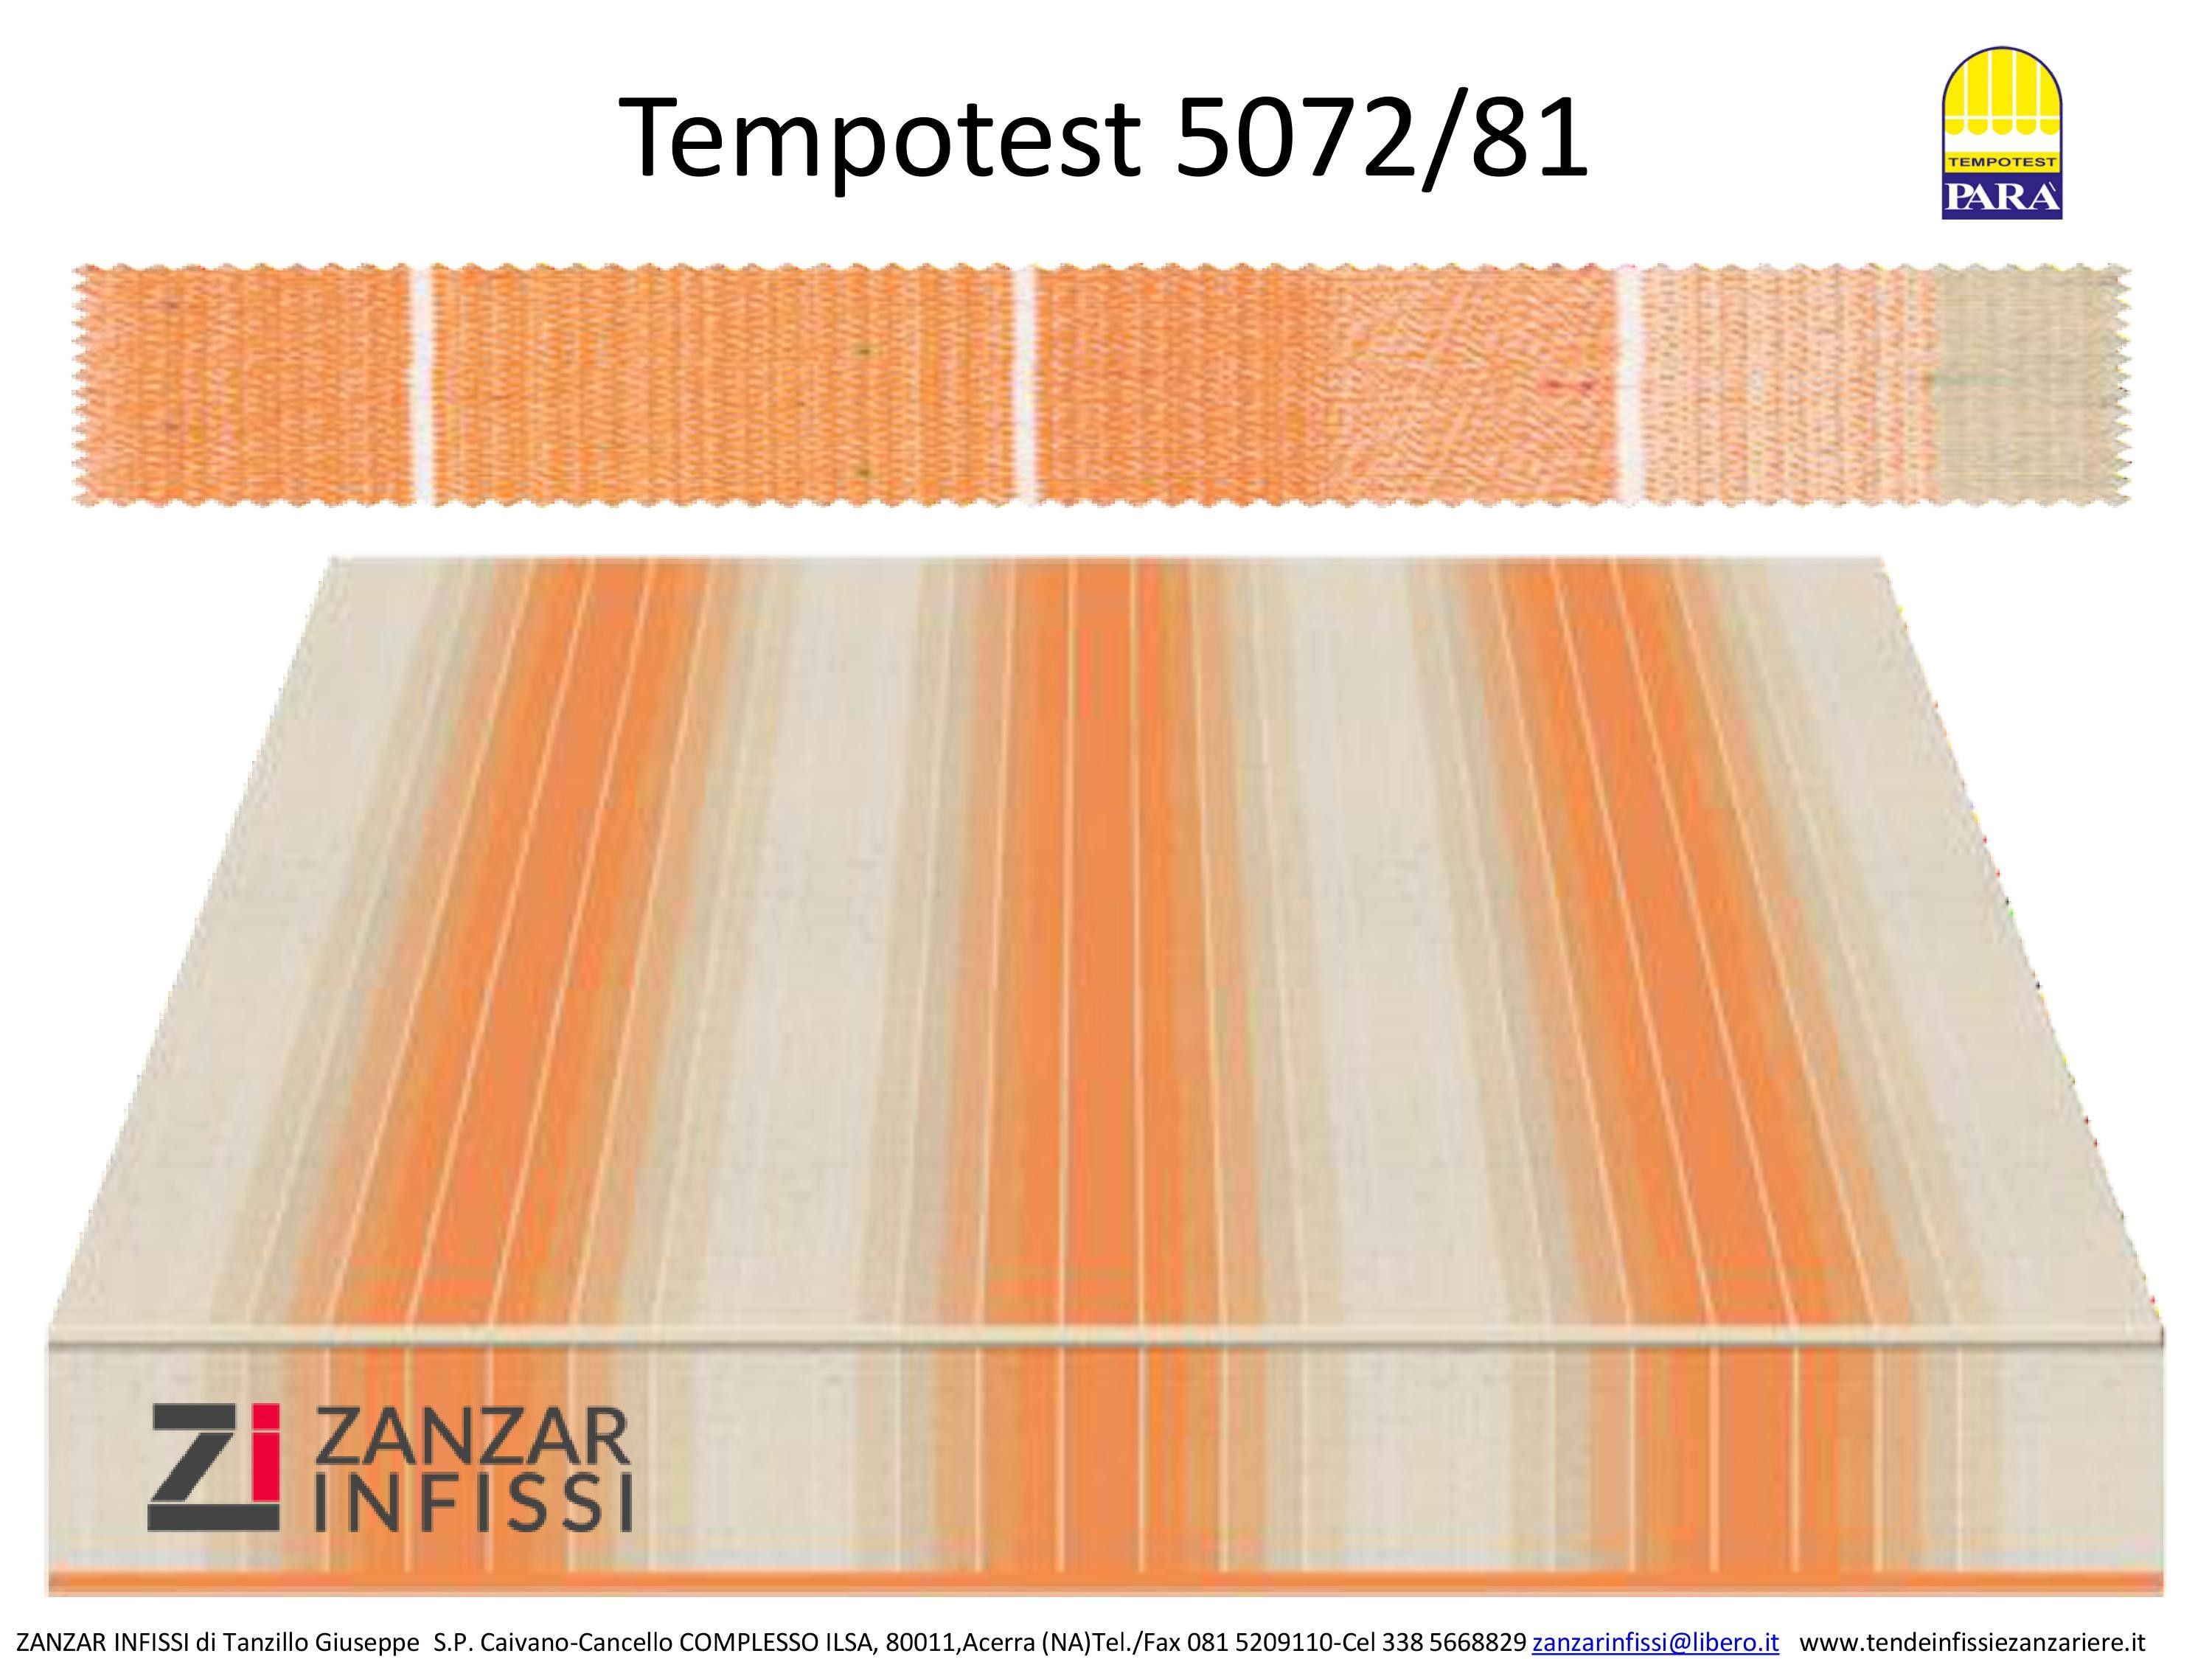 Tempotest 5072/81